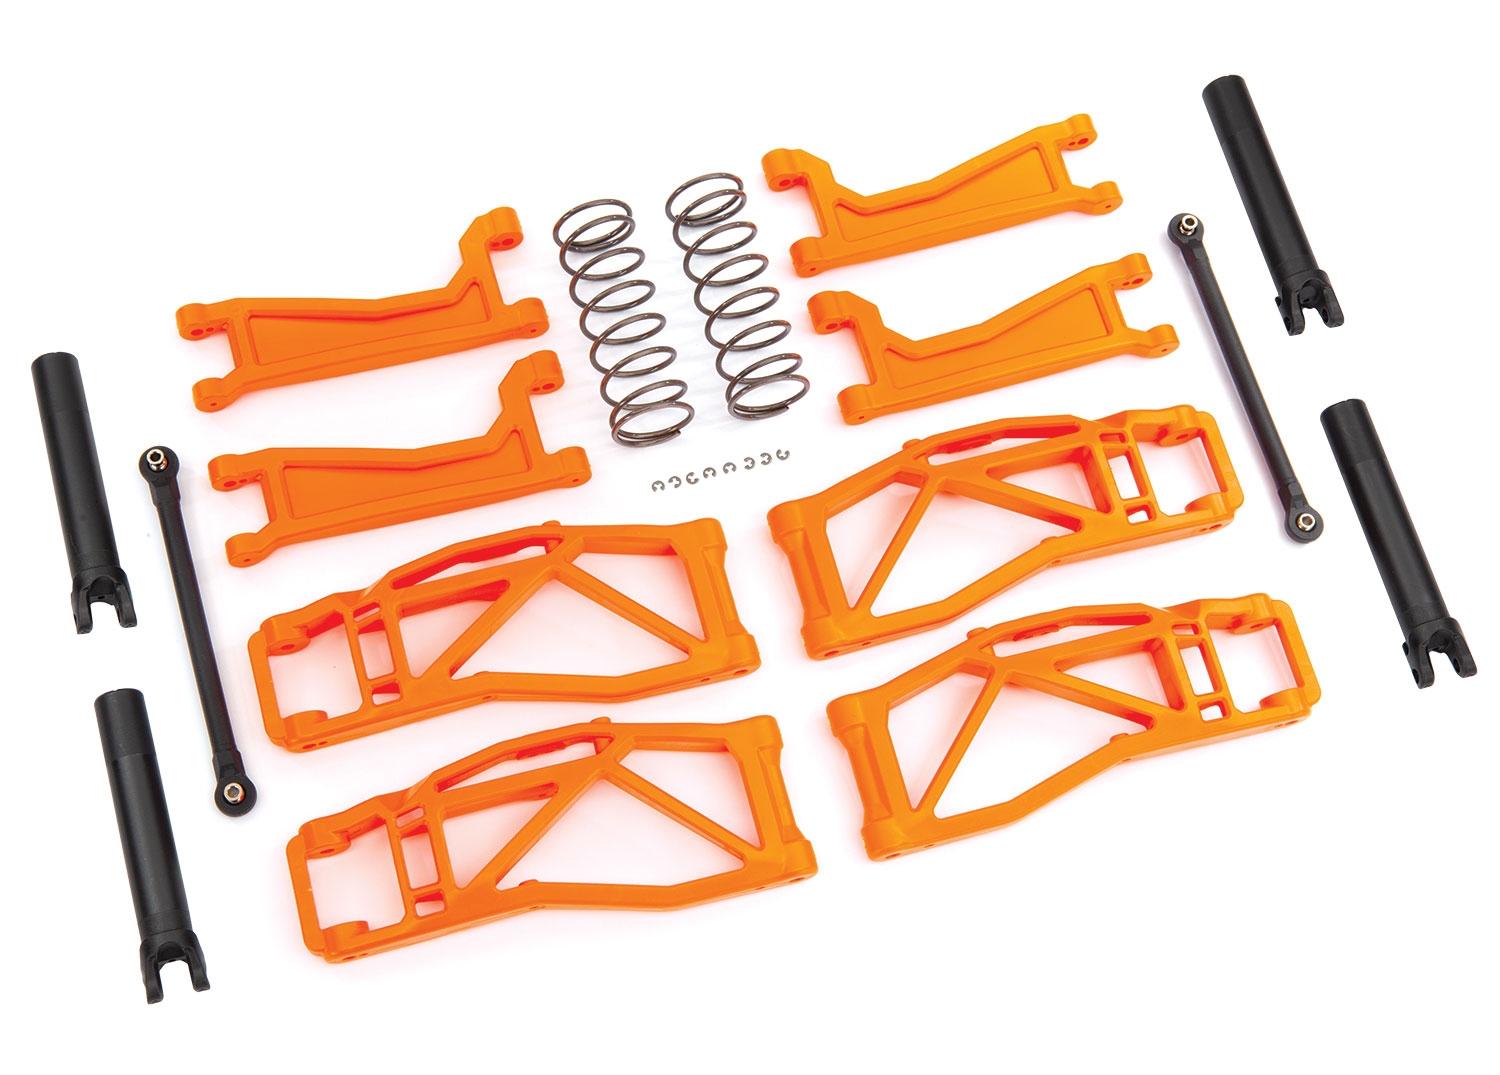 WideMaxx kit (#8995T) Orange